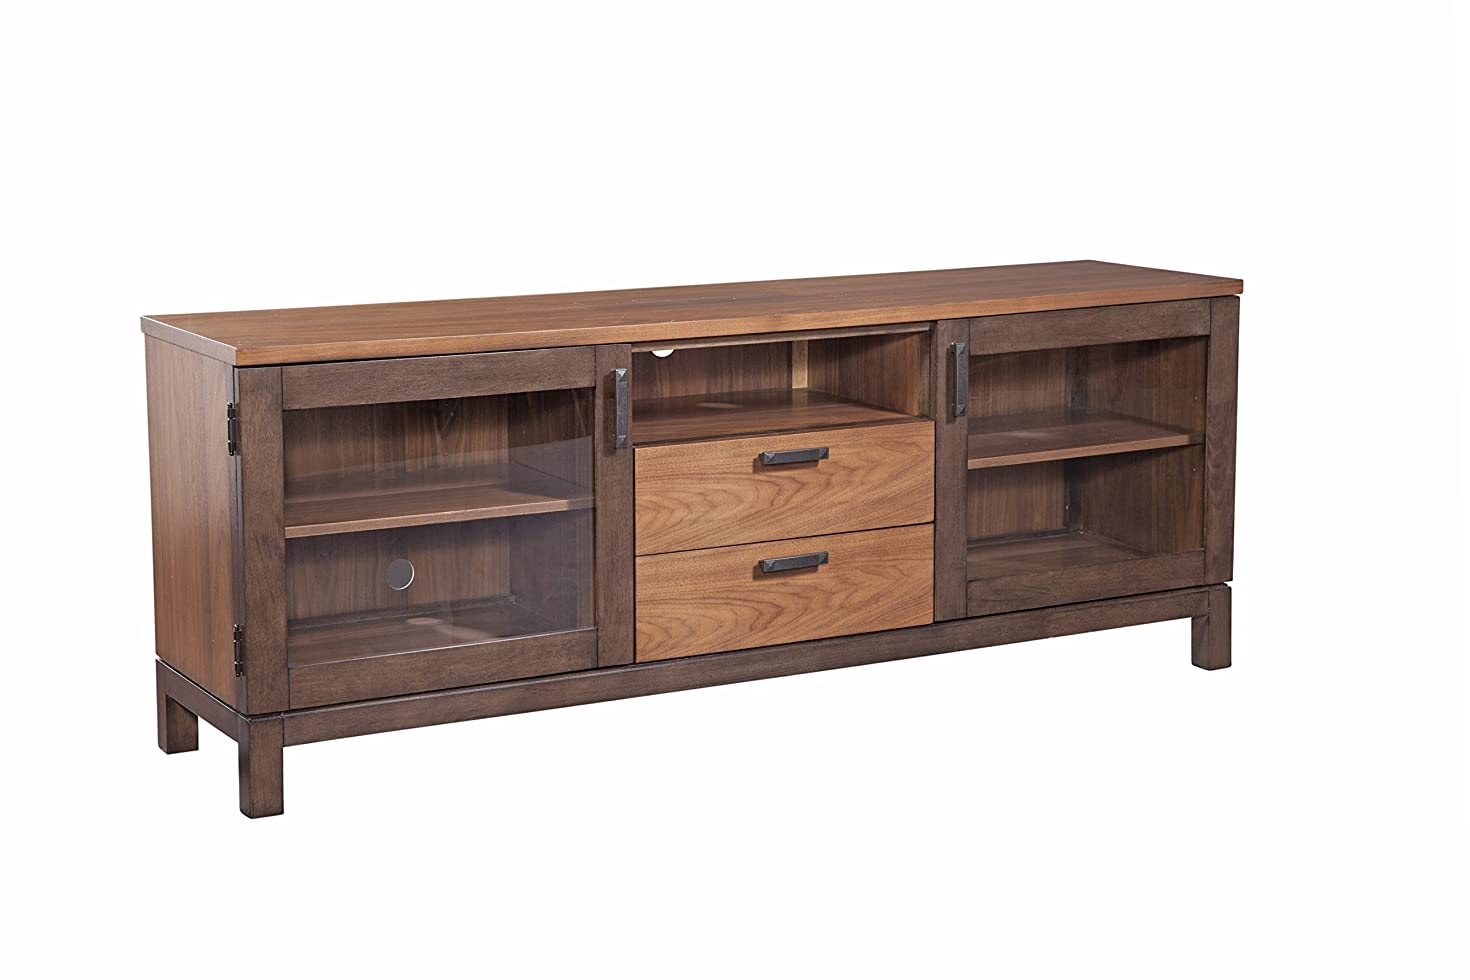 Furniture At Home 236 Food and Wine Estate Collection Console, Dark Chocolate/Walnut